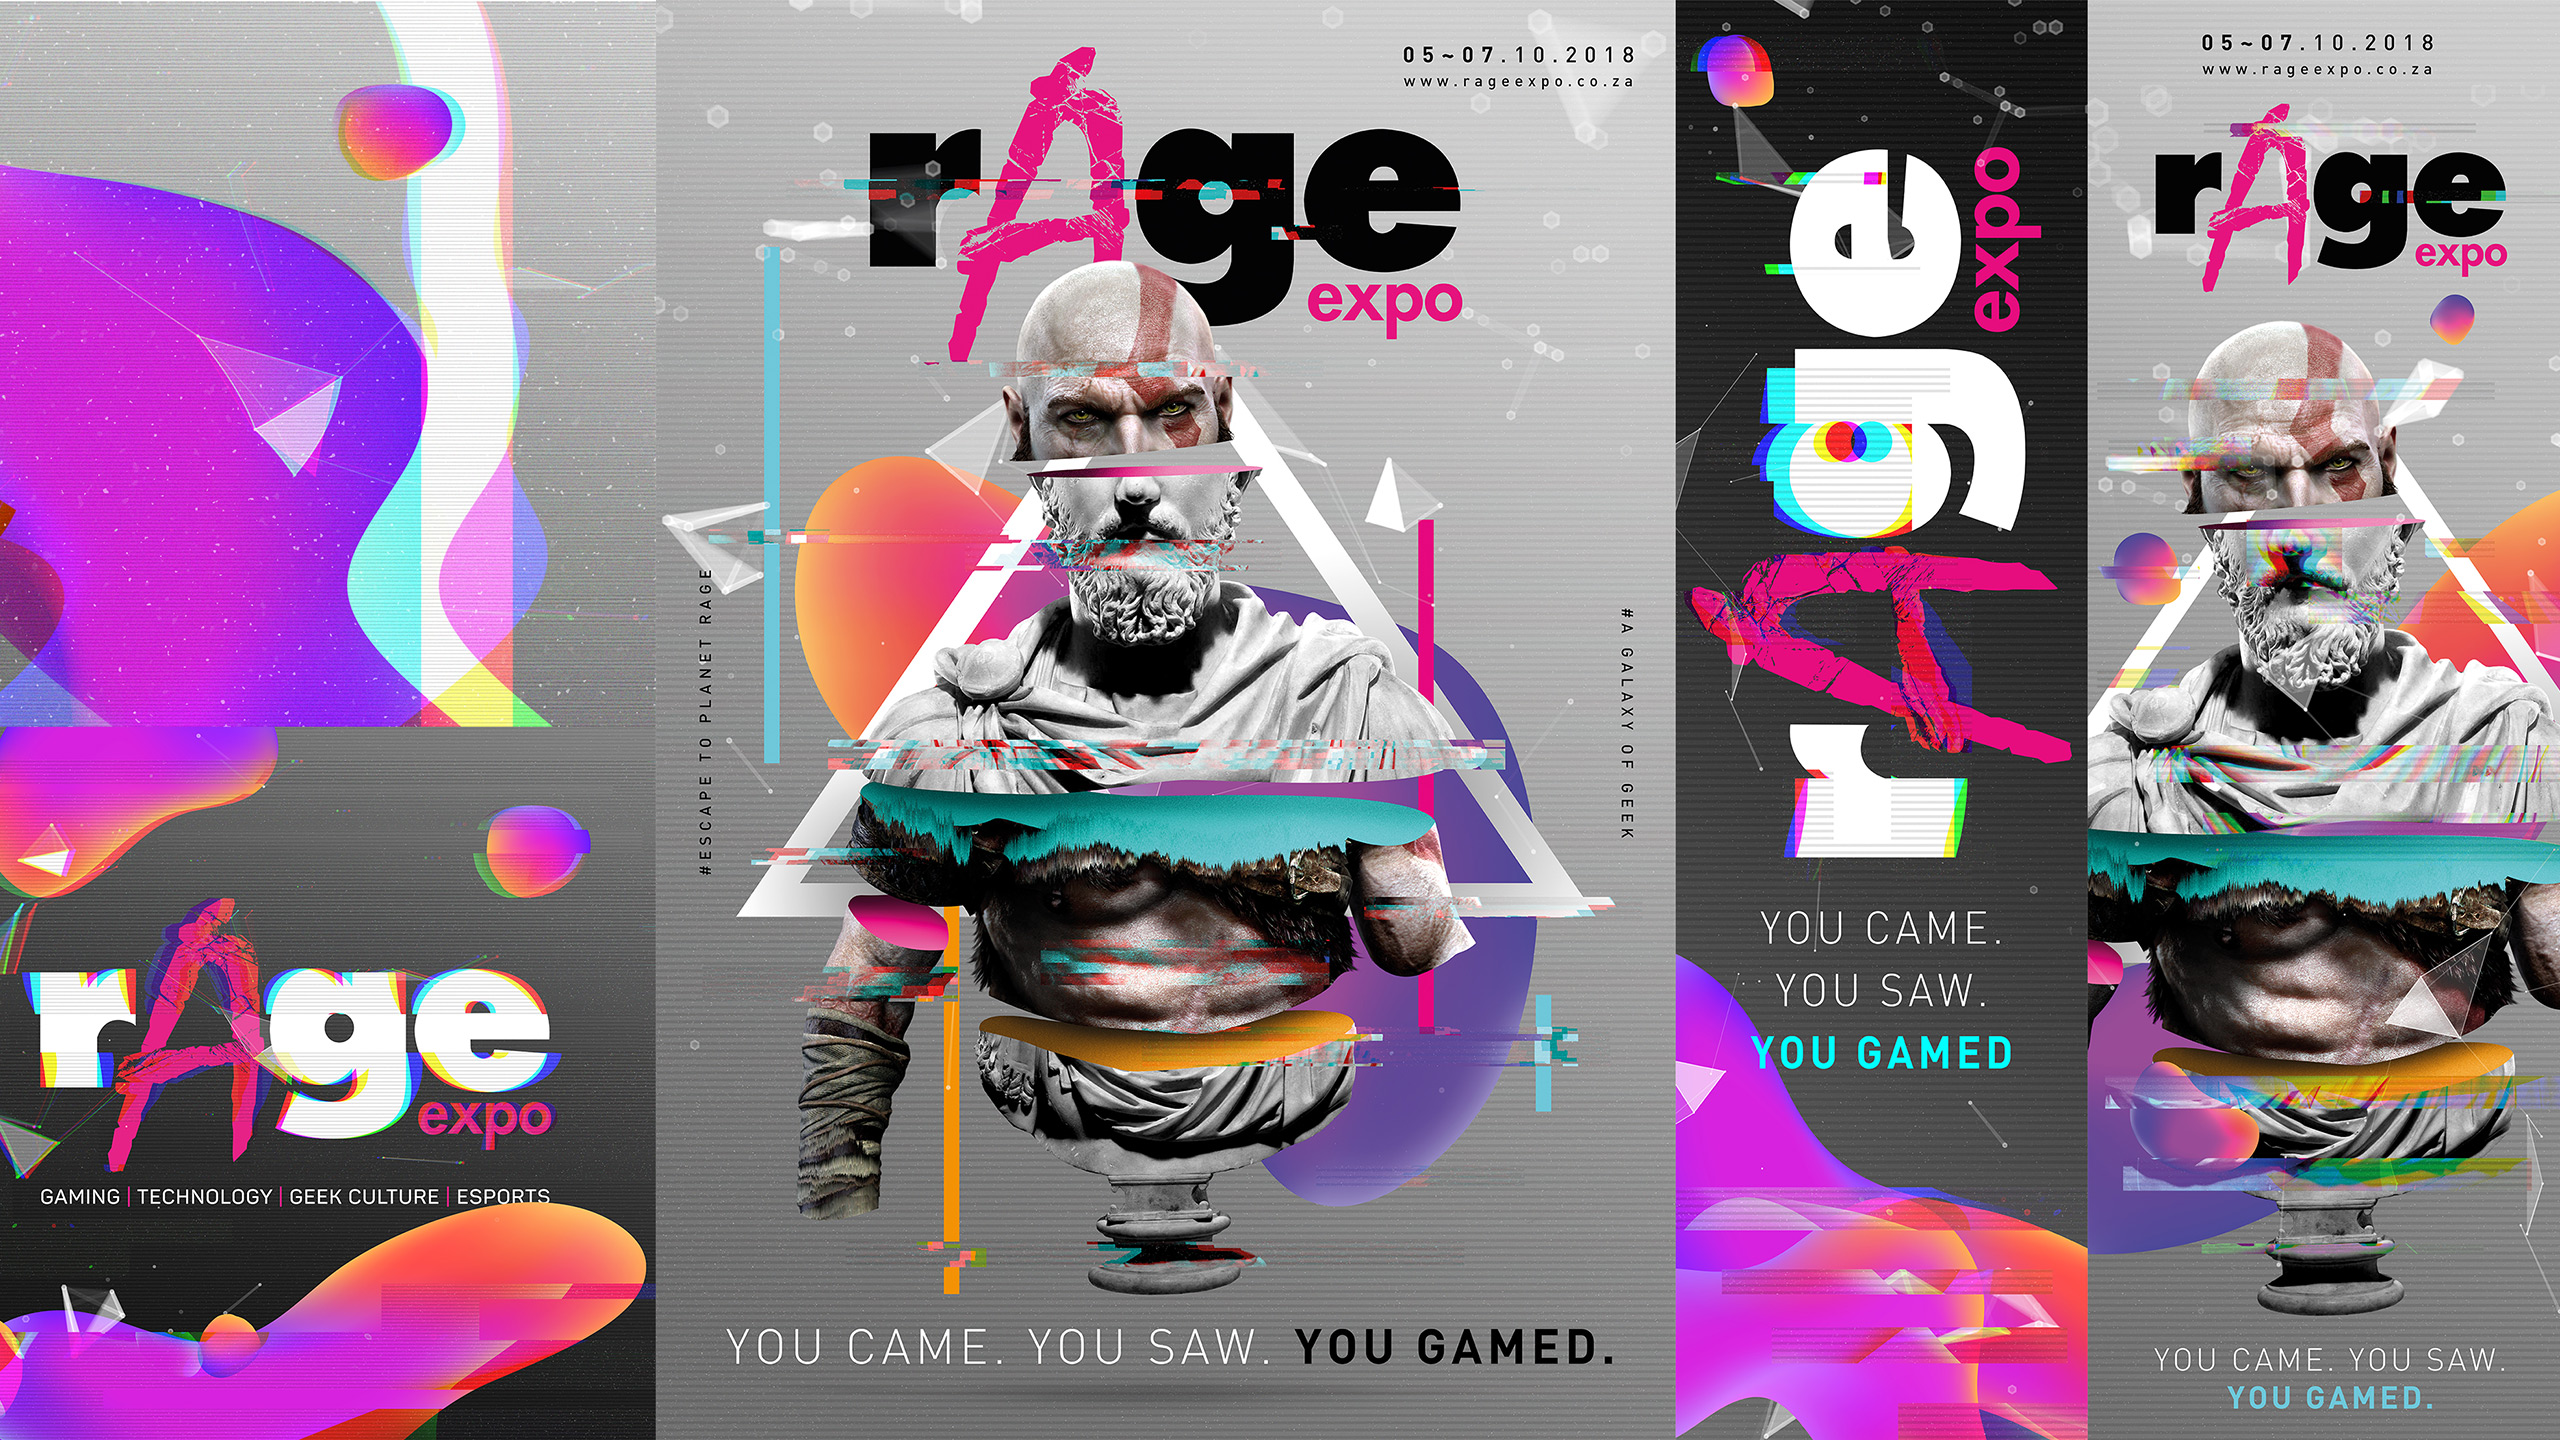 rAge Expo outdoor designs with glitch effect